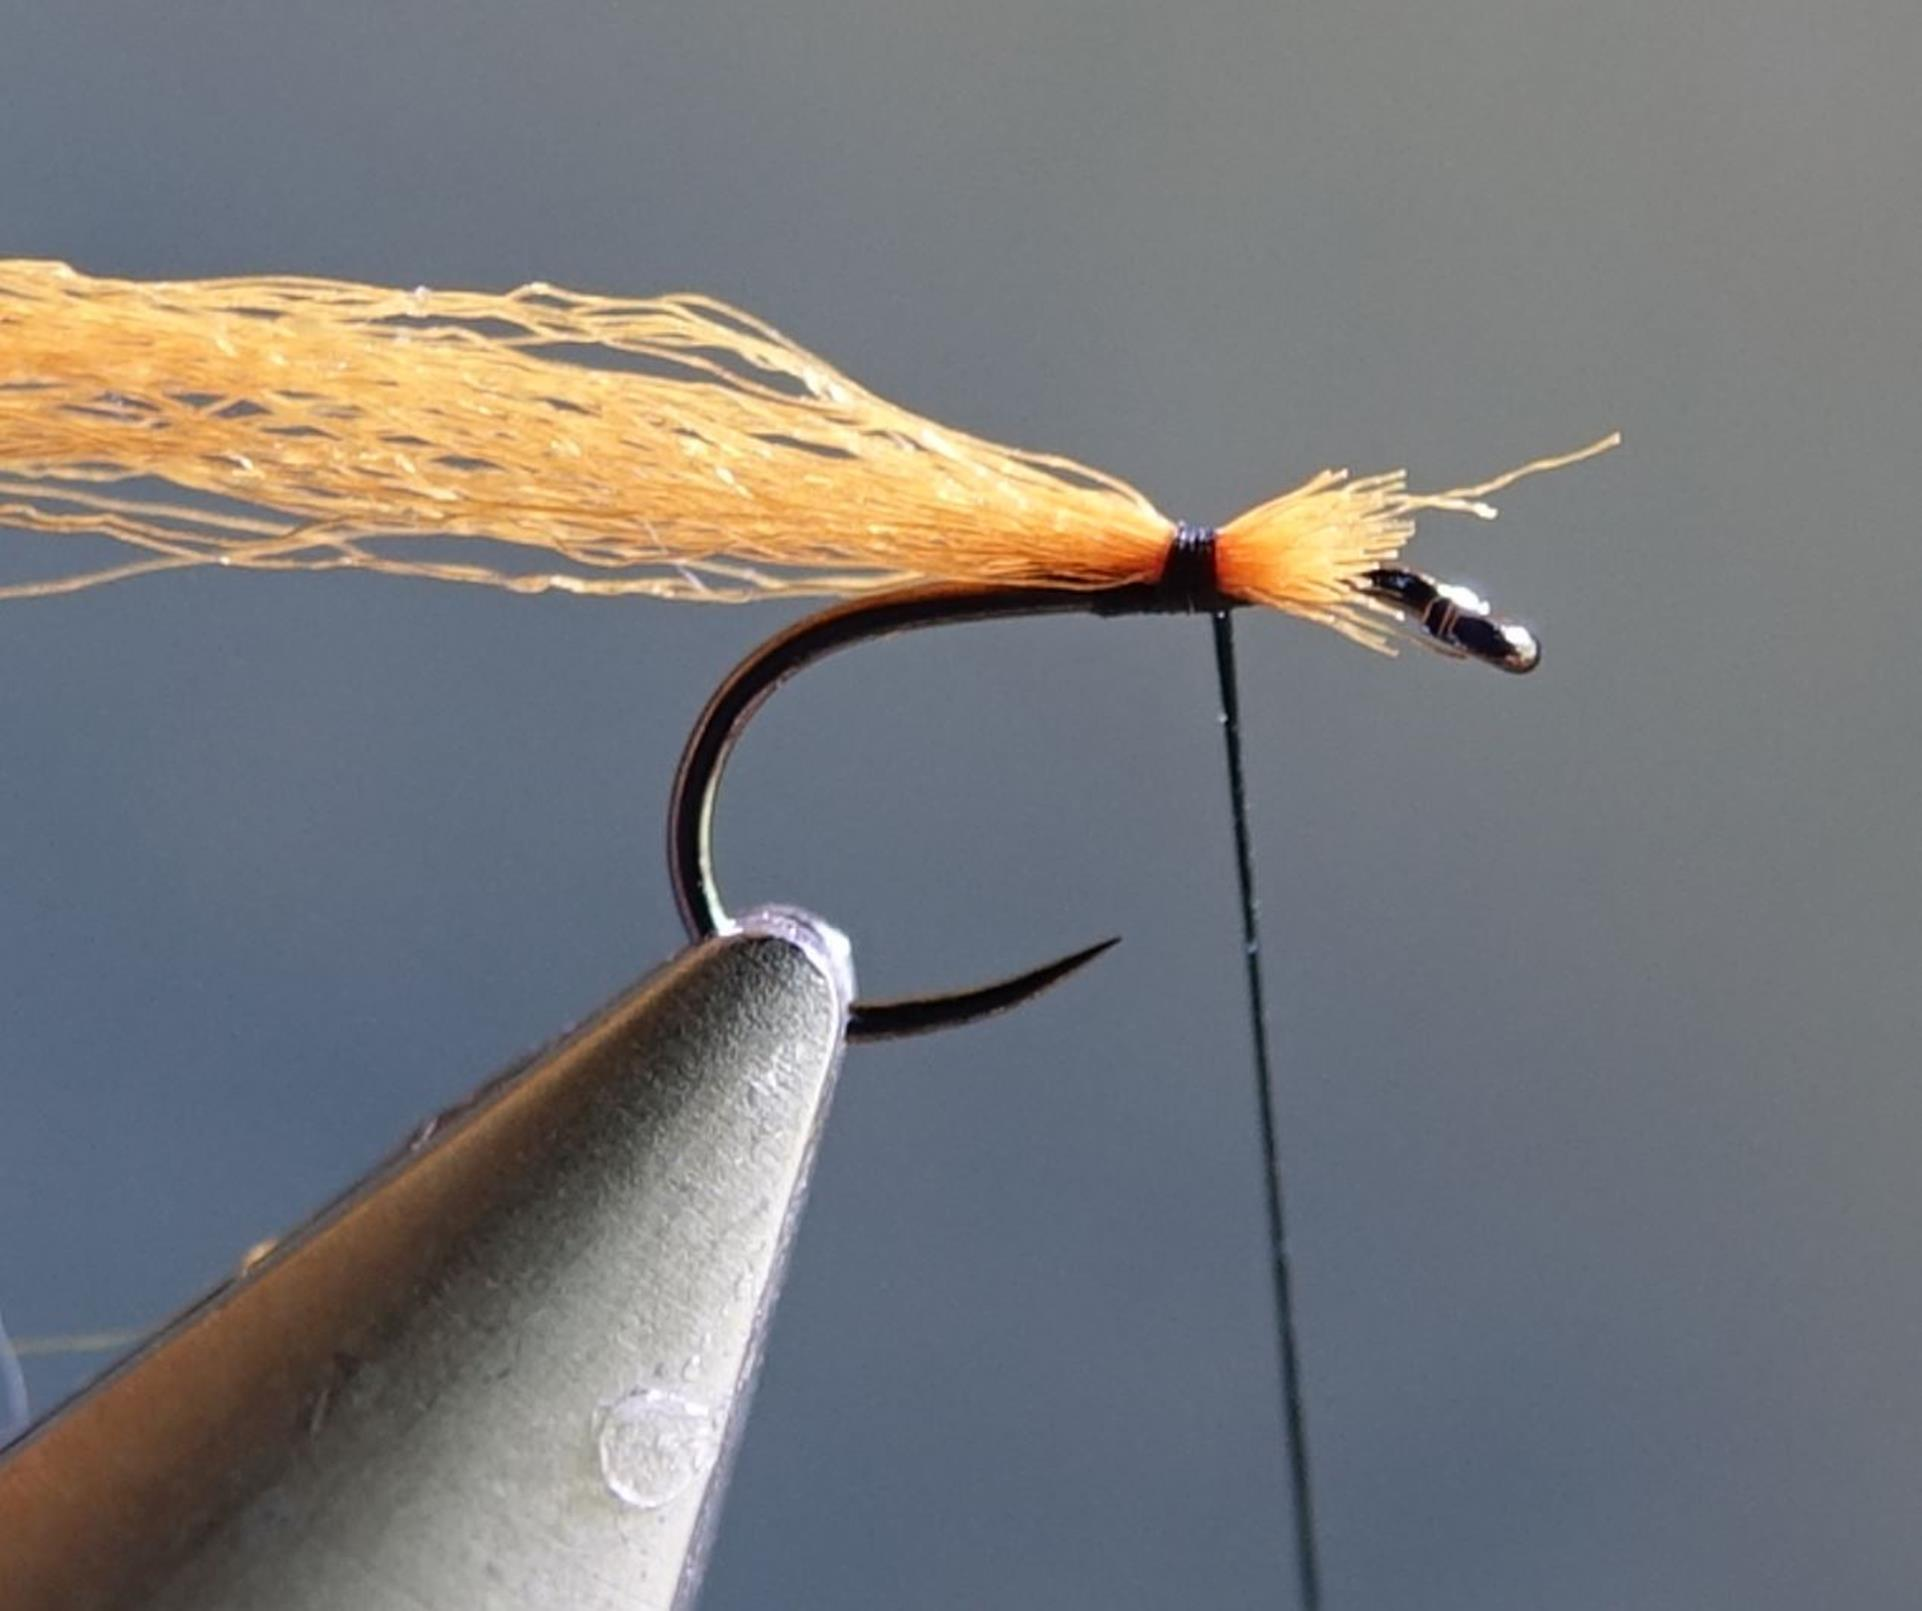 émergente olive ATE dubbing CDC antron lièvre mouche fly tying eclosion